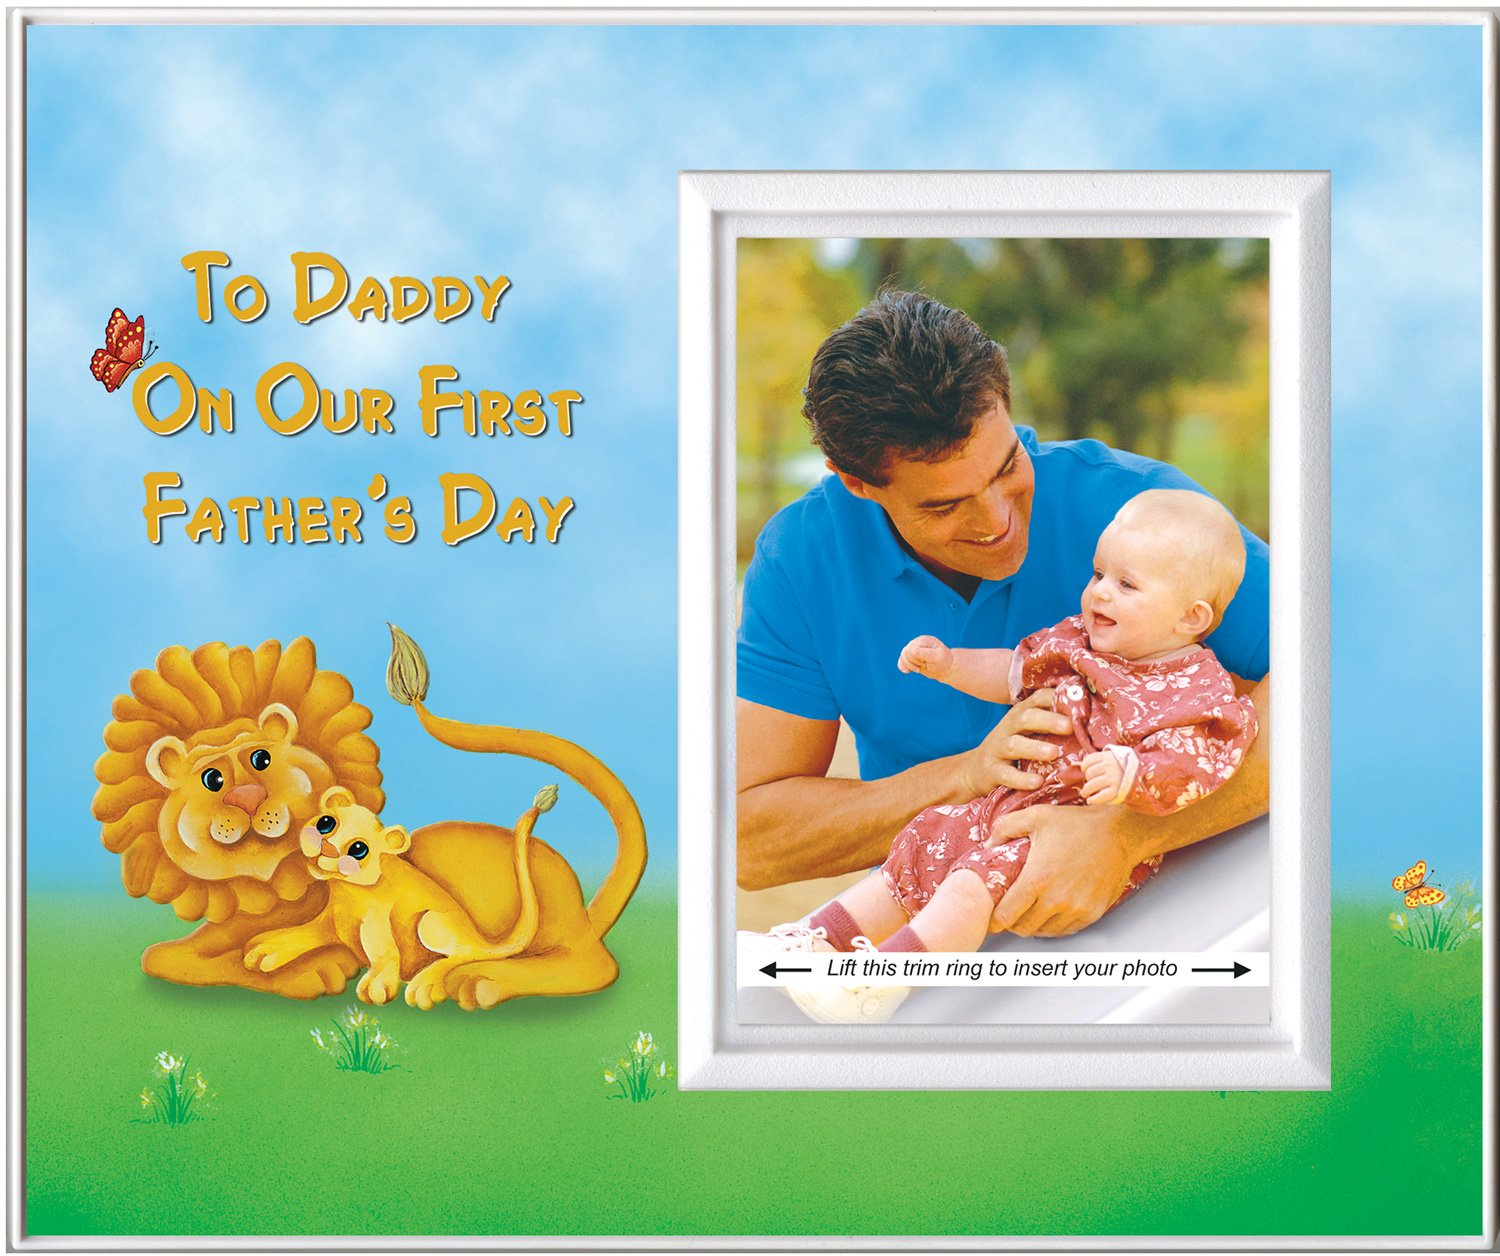 First Father's Day Picture Frame Gift | Affordable, Colorful and Fun | Holds 3.5 x 5 Photo | Boy or Girl Nursery Decor | Dad and Baby Lion Theme | Innovative Front-Loading Design Expressly Yours!